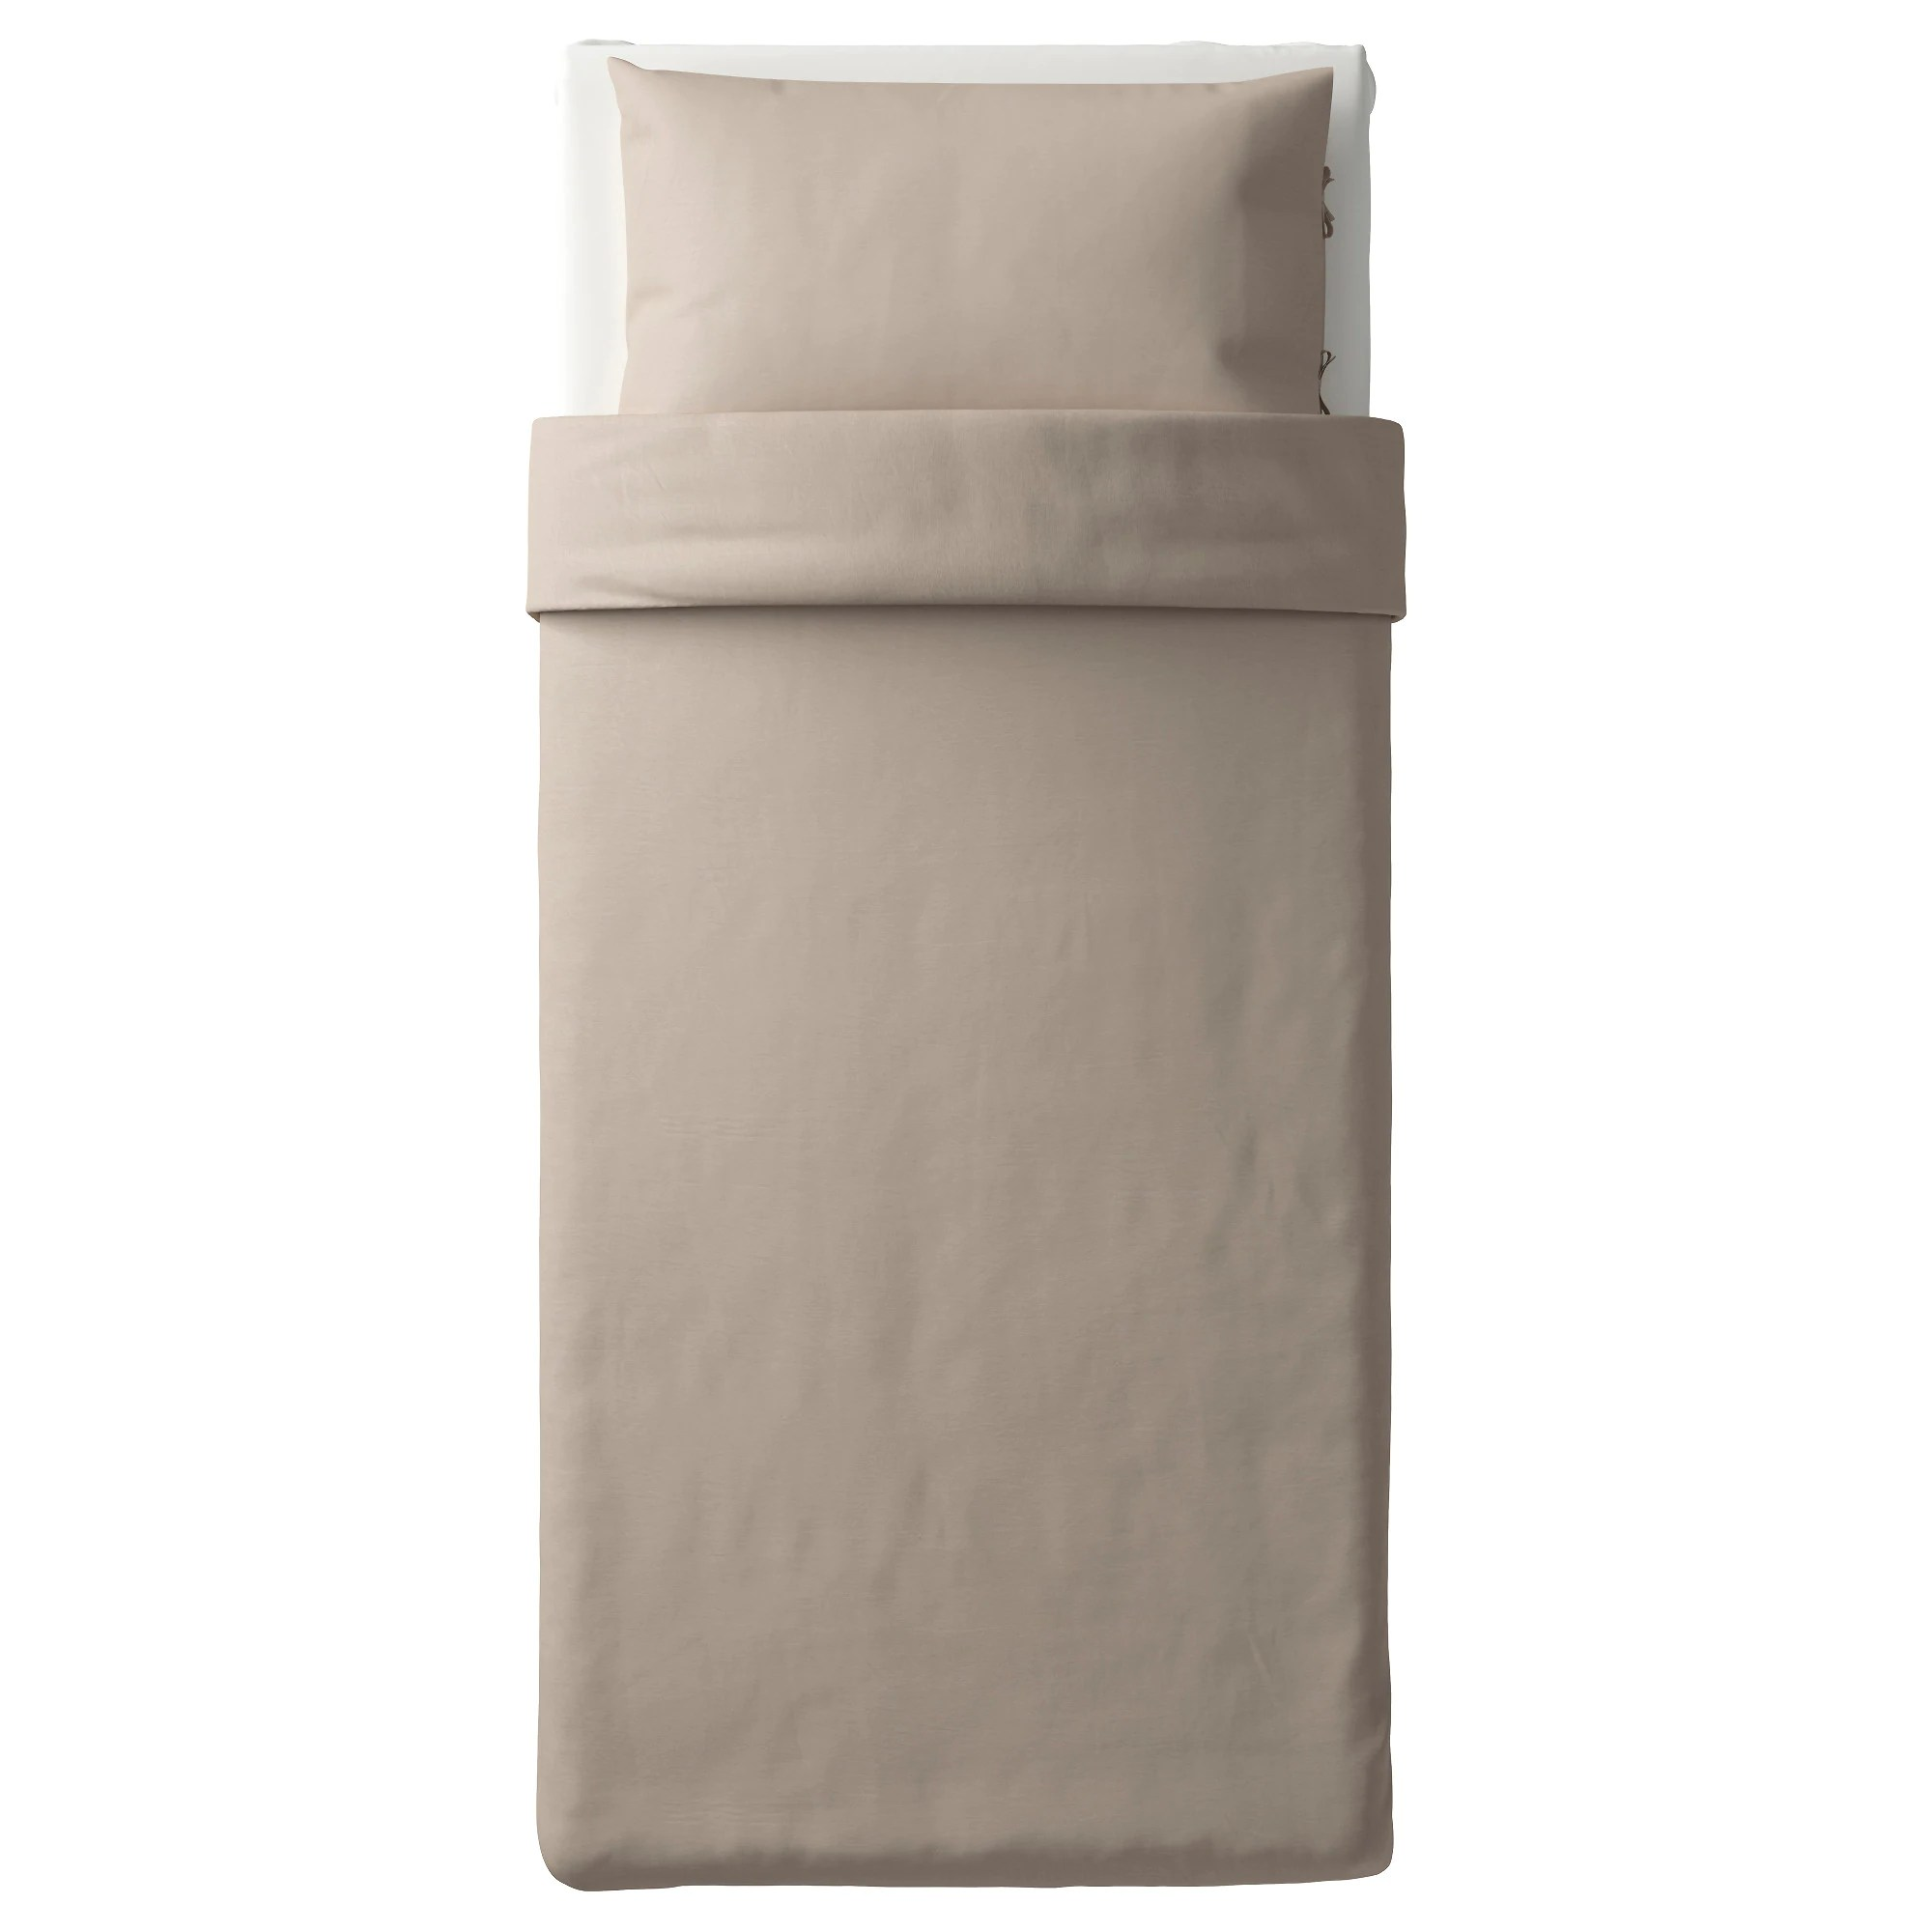 Designer Bettwäsche Sale Puderviva Duvet Cover And Pillowcase S Natural